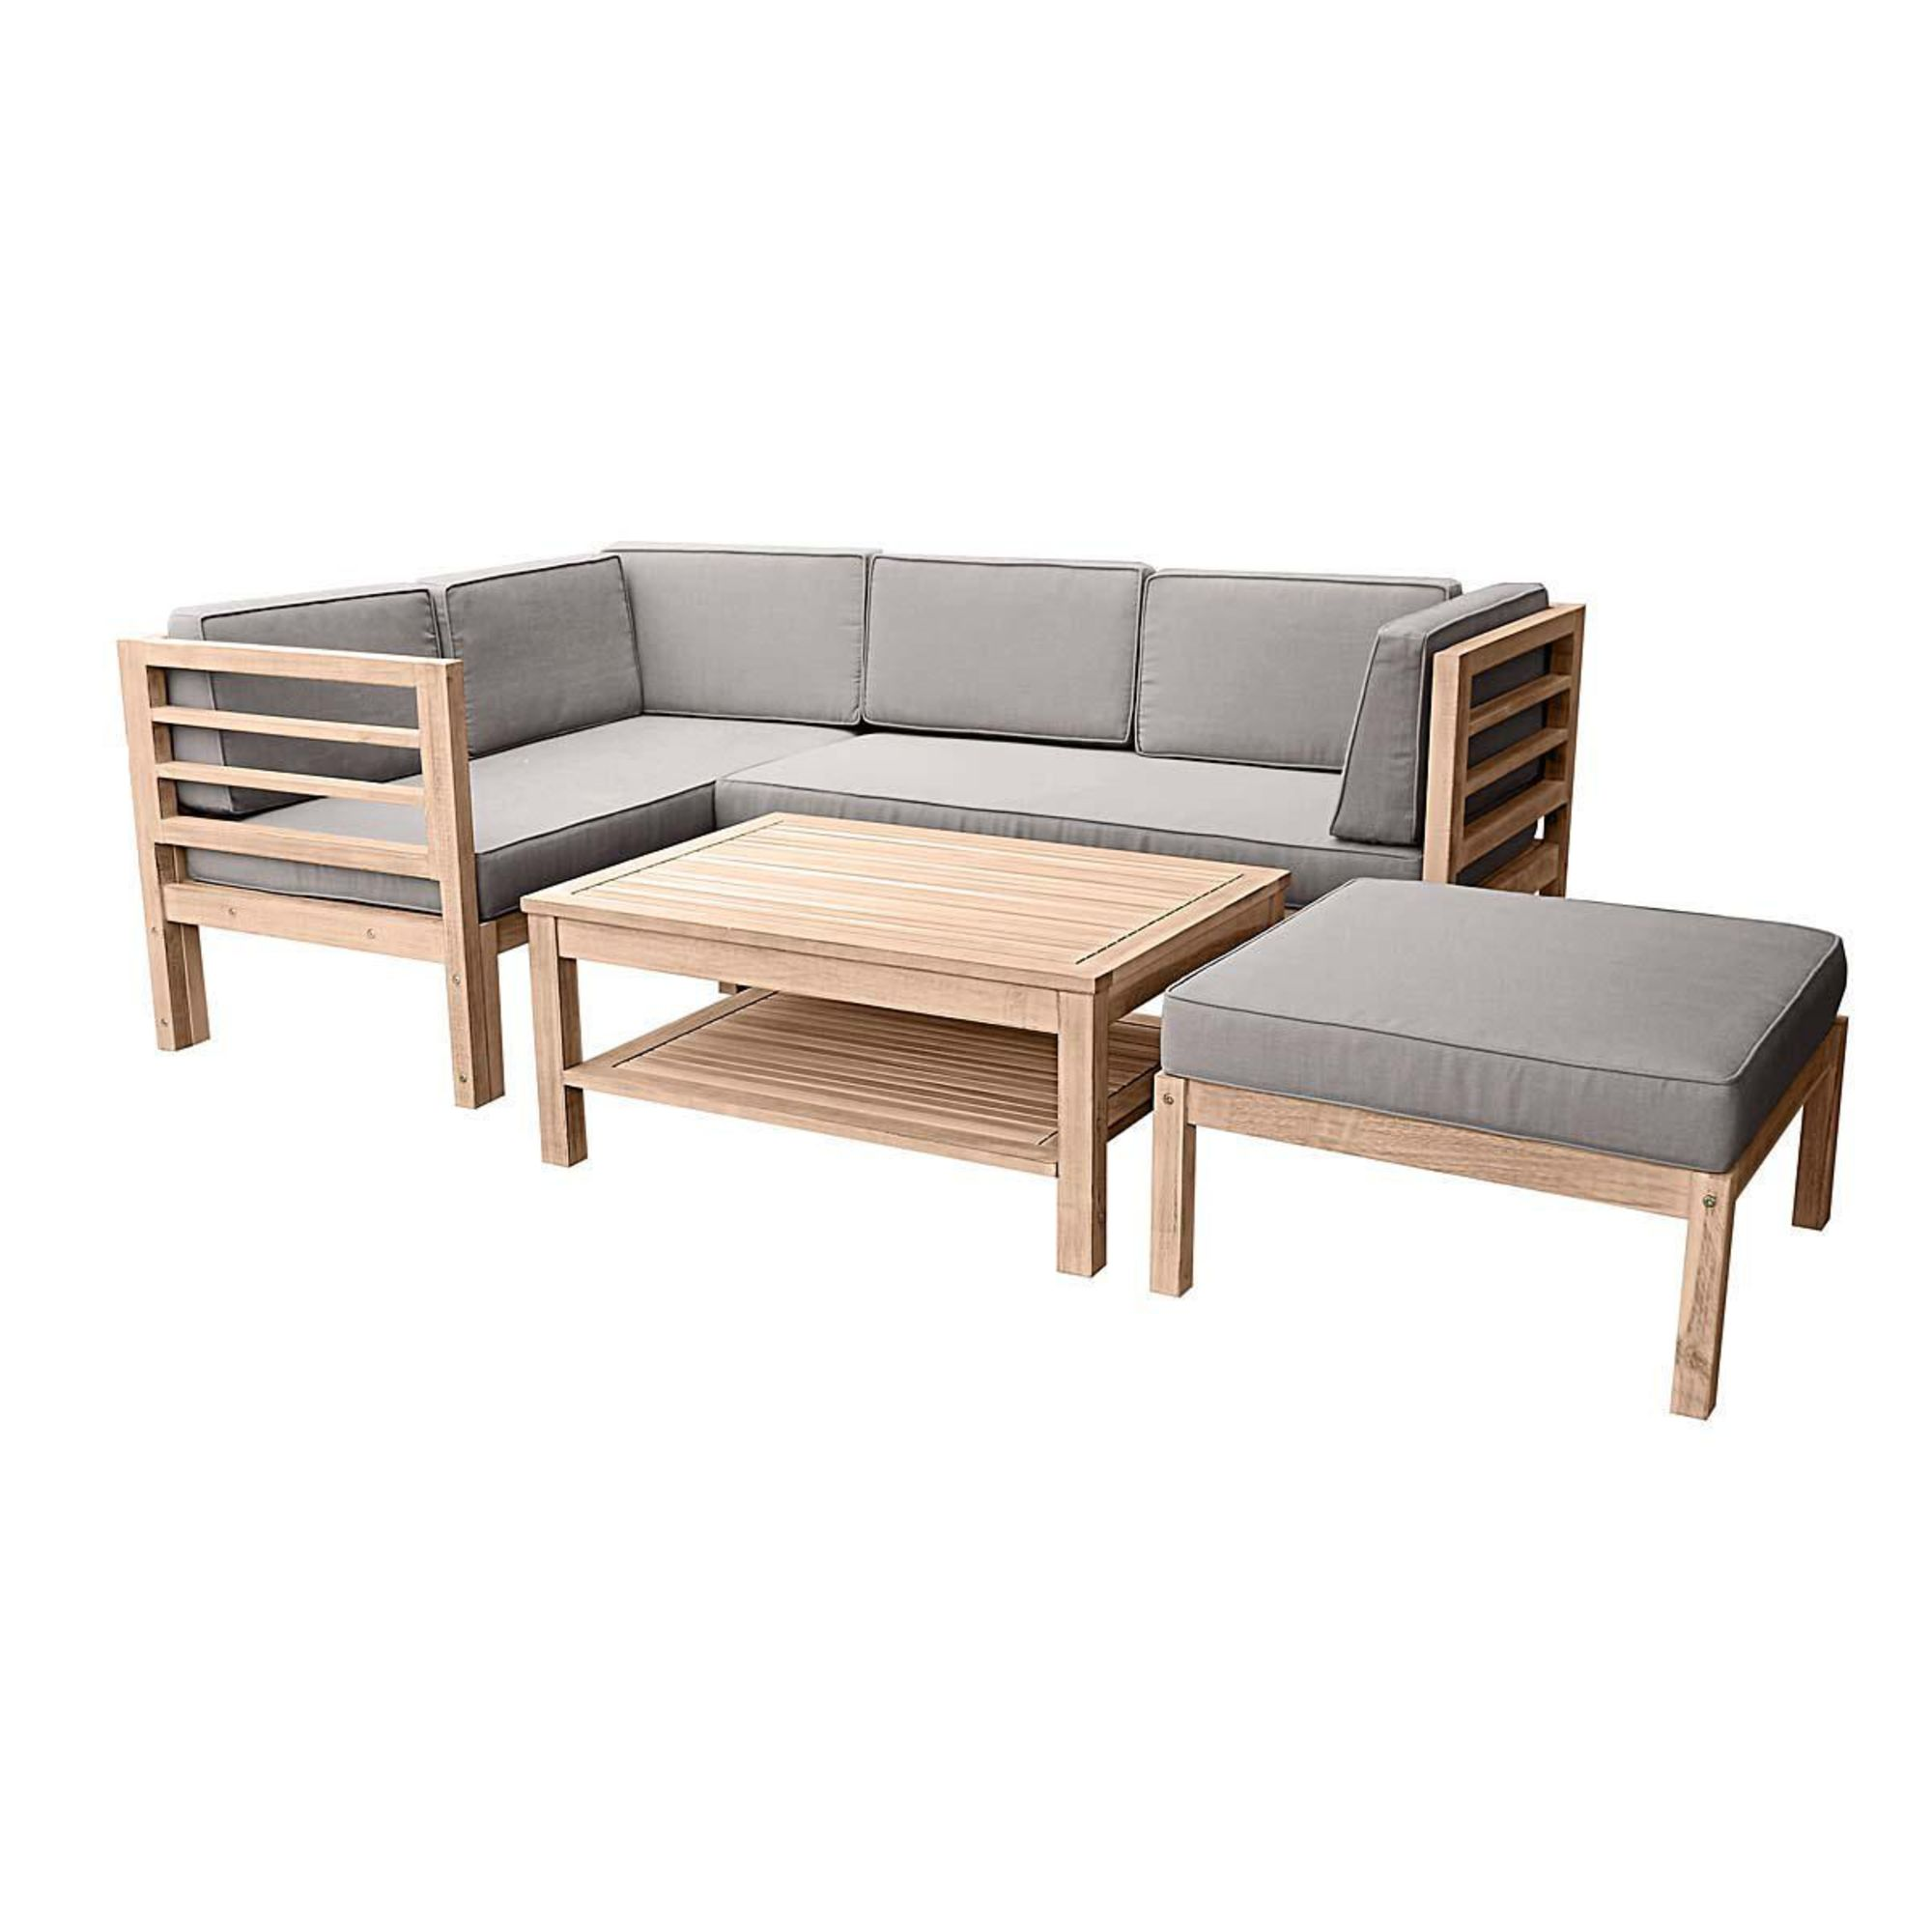 gartenmobel set lounge holz. Black Bedroom Furniture Sets. Home Design Ideas